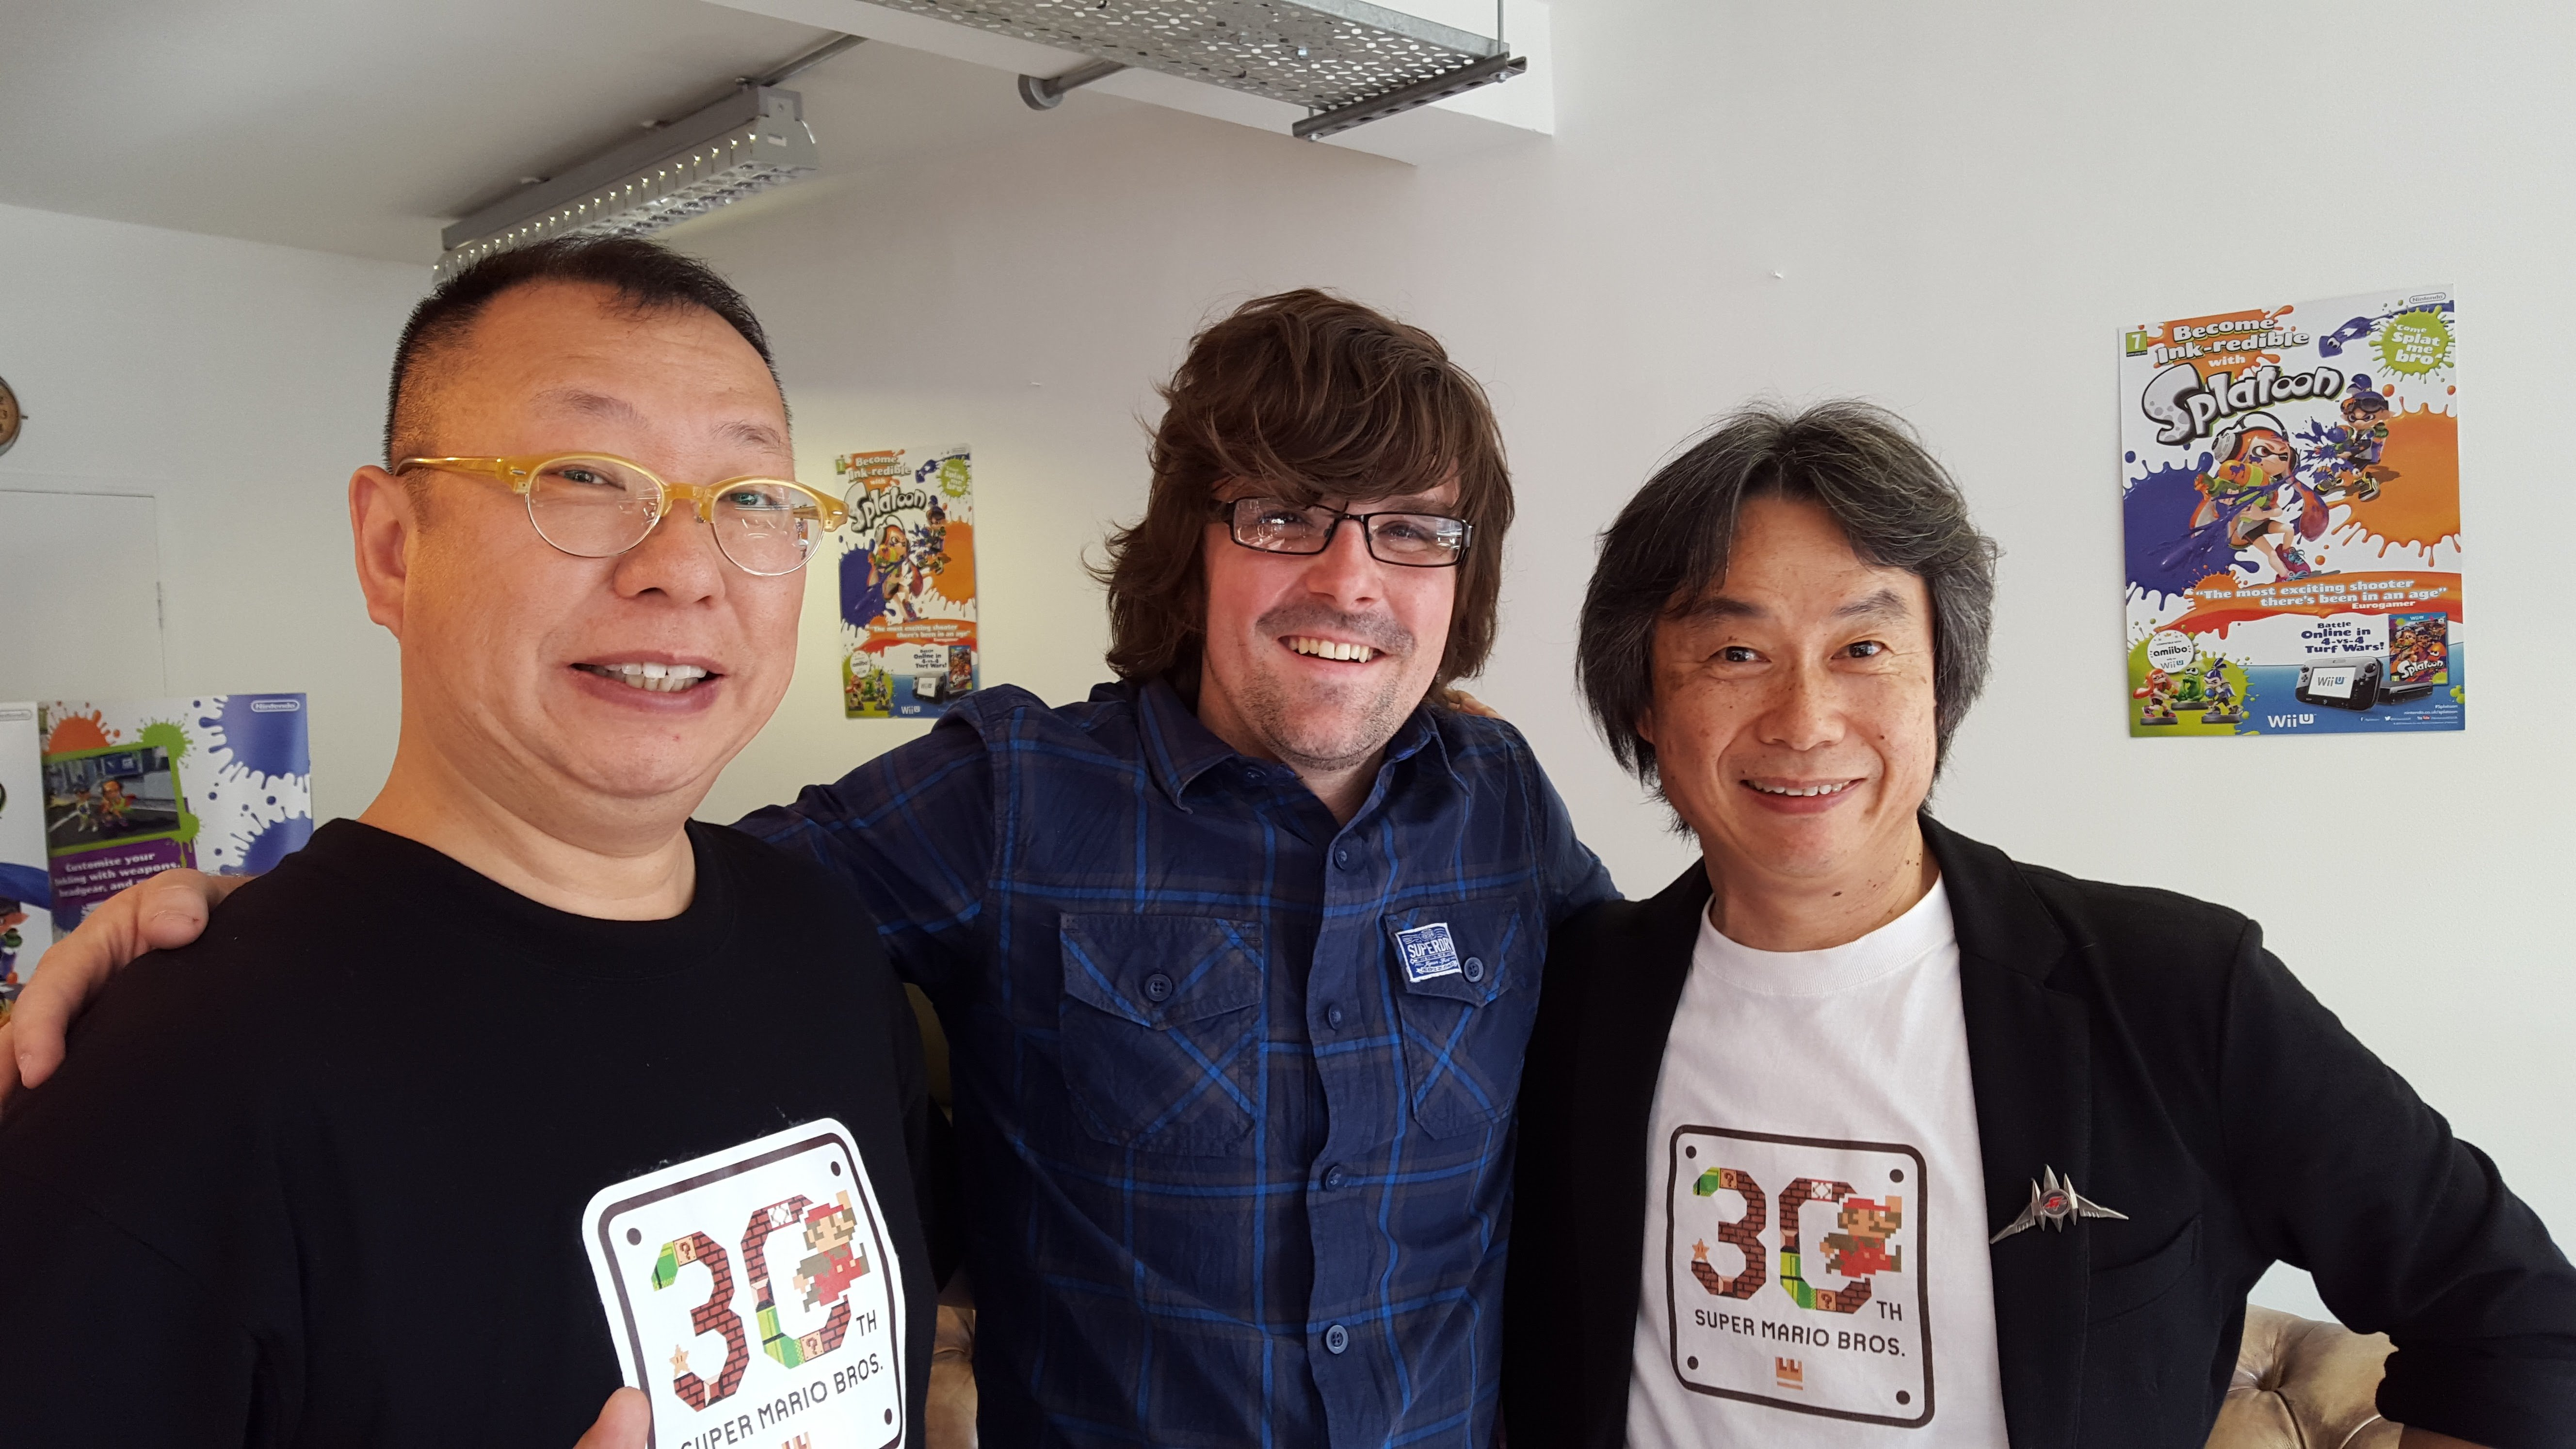 Back in 2015, this very writer and Nintendo Life editor Damien McFerran were lucky enough to meet Miyamoto and Takashi Tezuka in rainy old London. We haven't stopped bragging about it since.